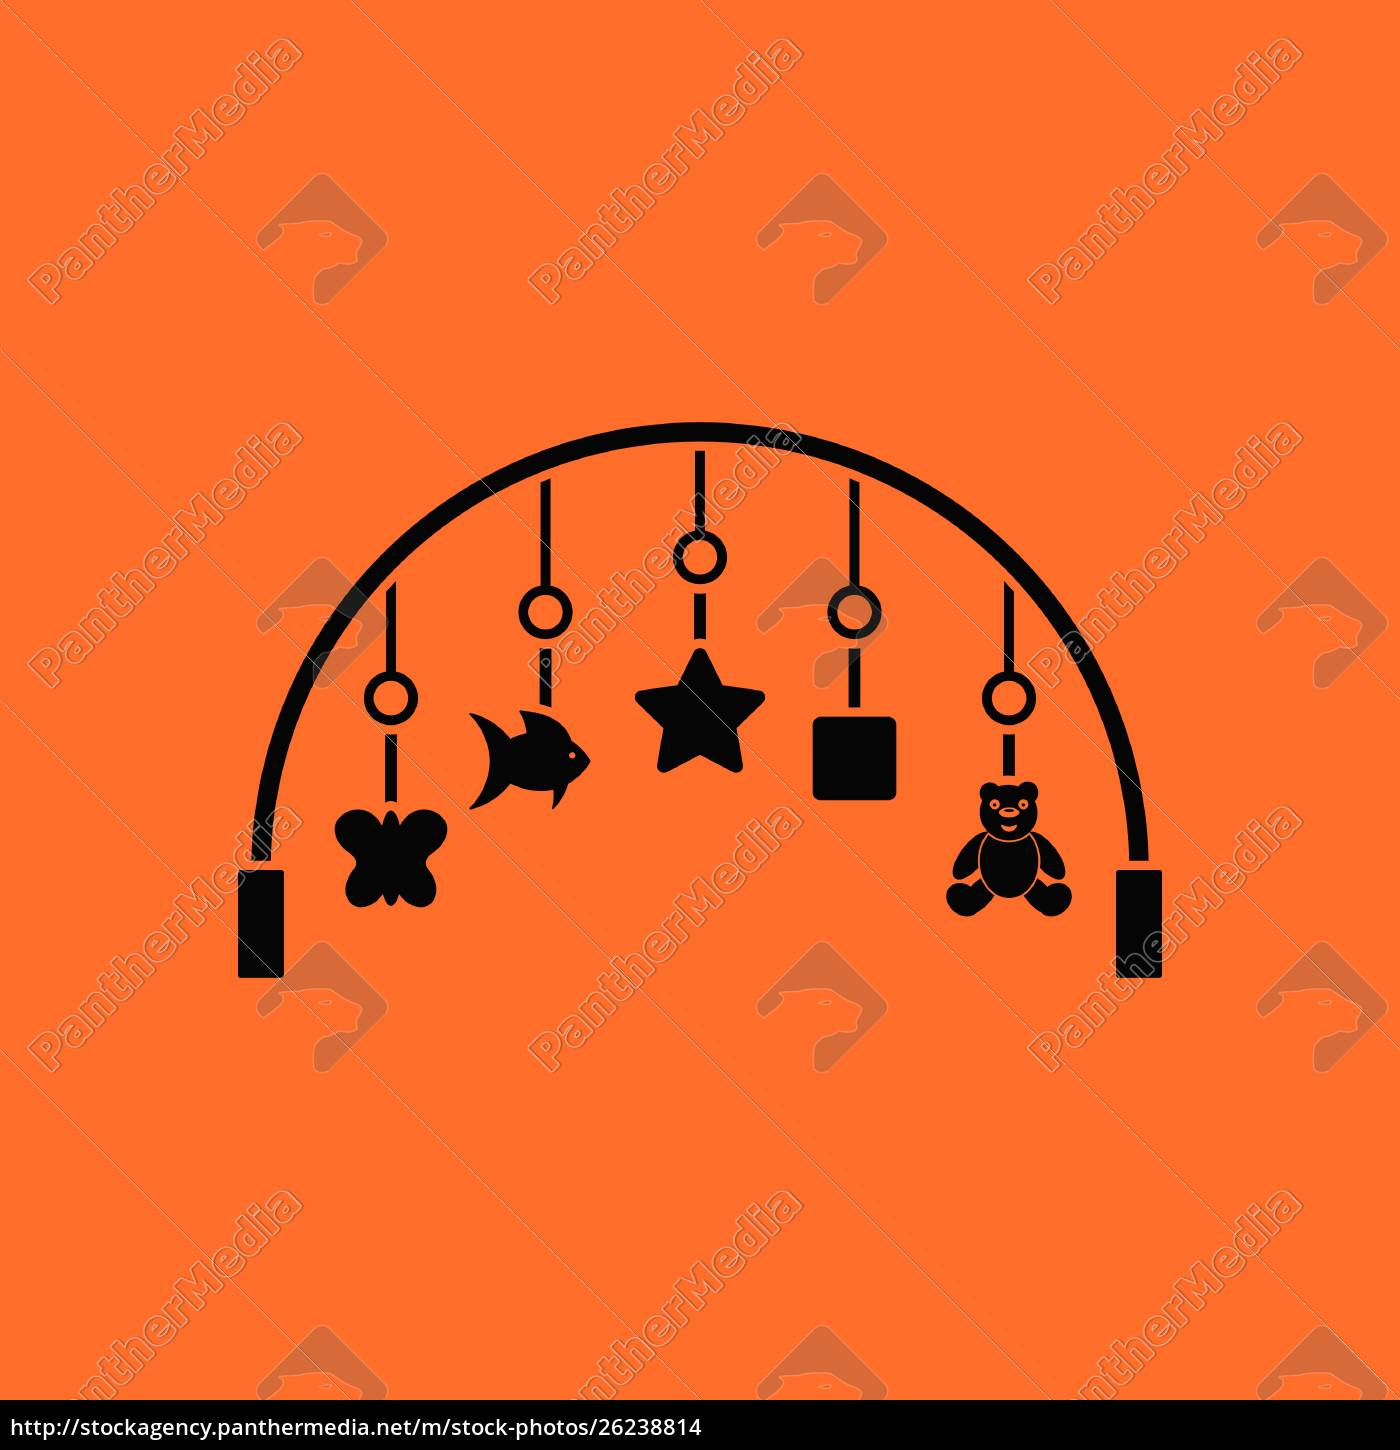 baby, arc, with, hanged, toys, icon. - 26238814